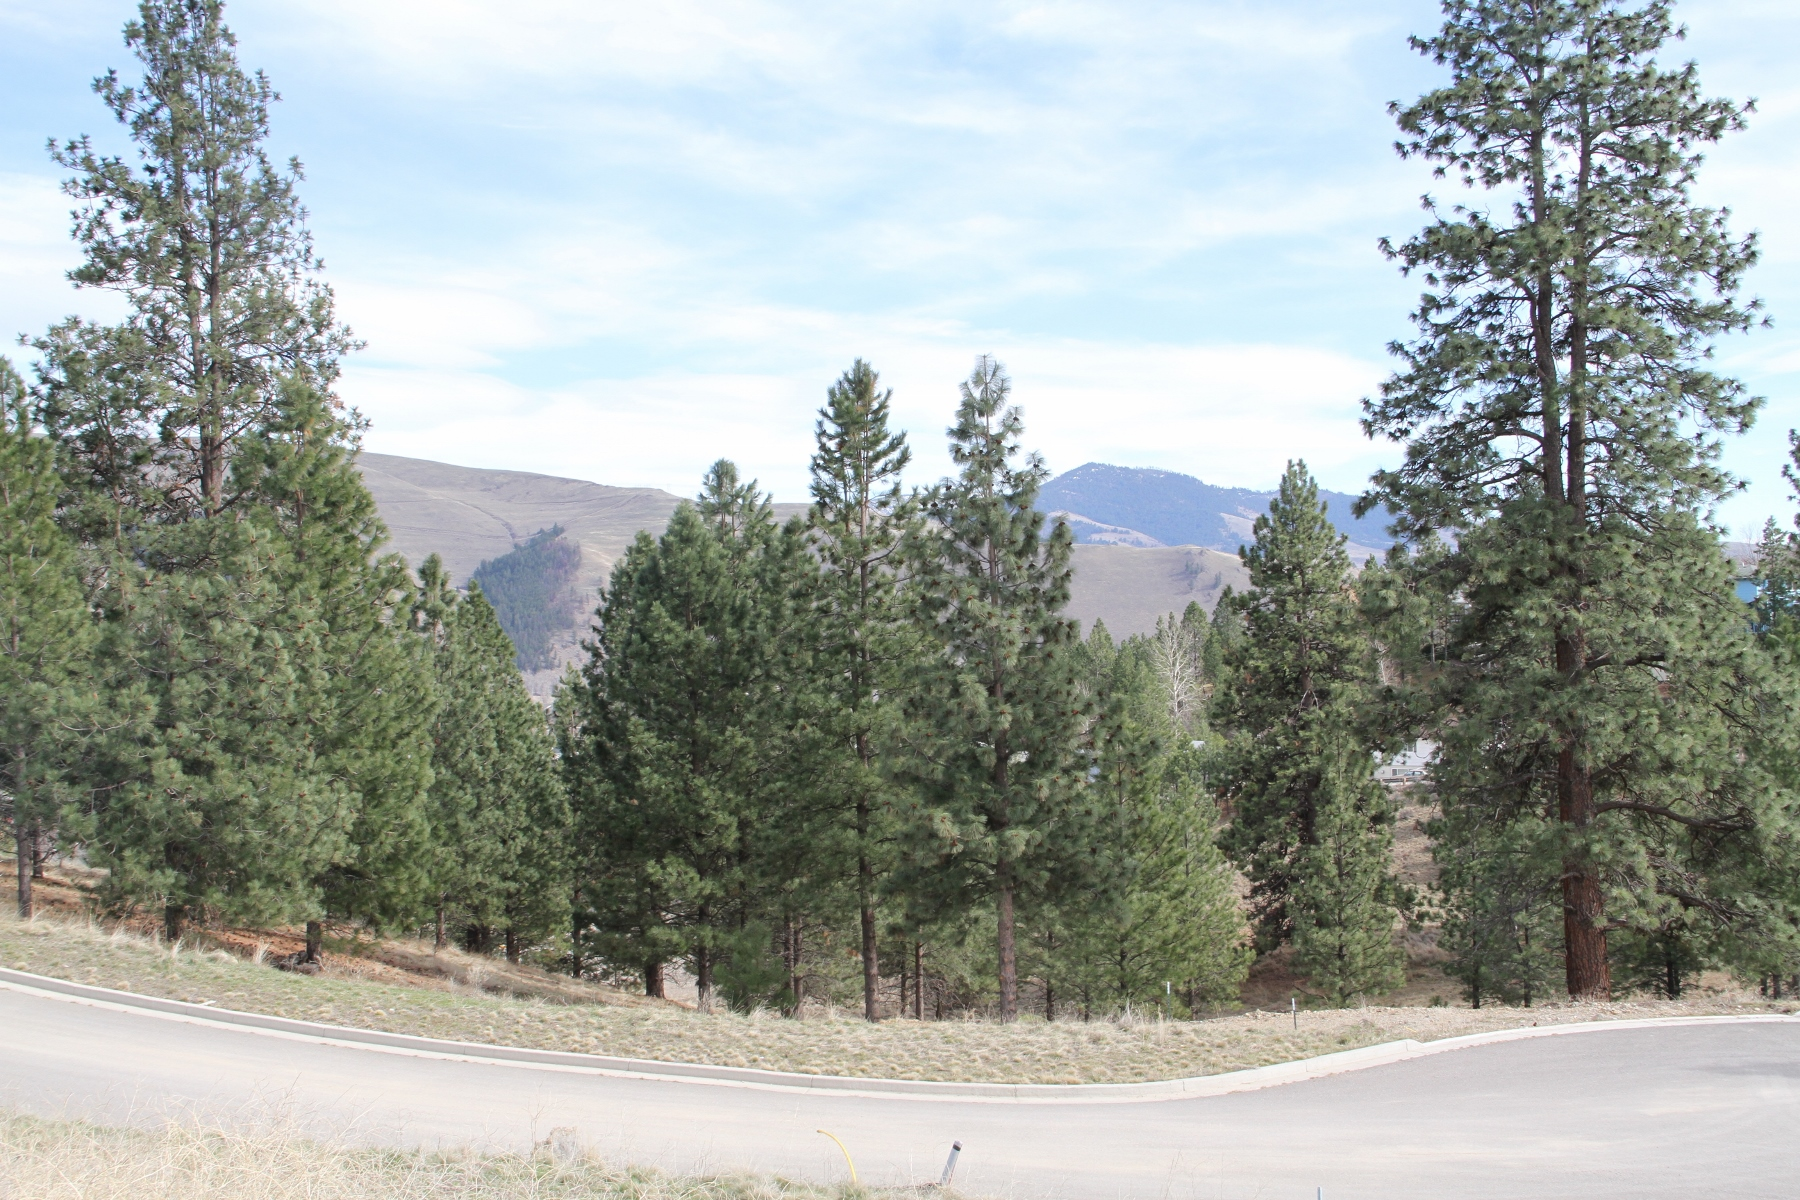 Land for Sale at Ponderosa Heights Lot 18 Sugar Pine Pl Lolo, Montana, 59847 United States